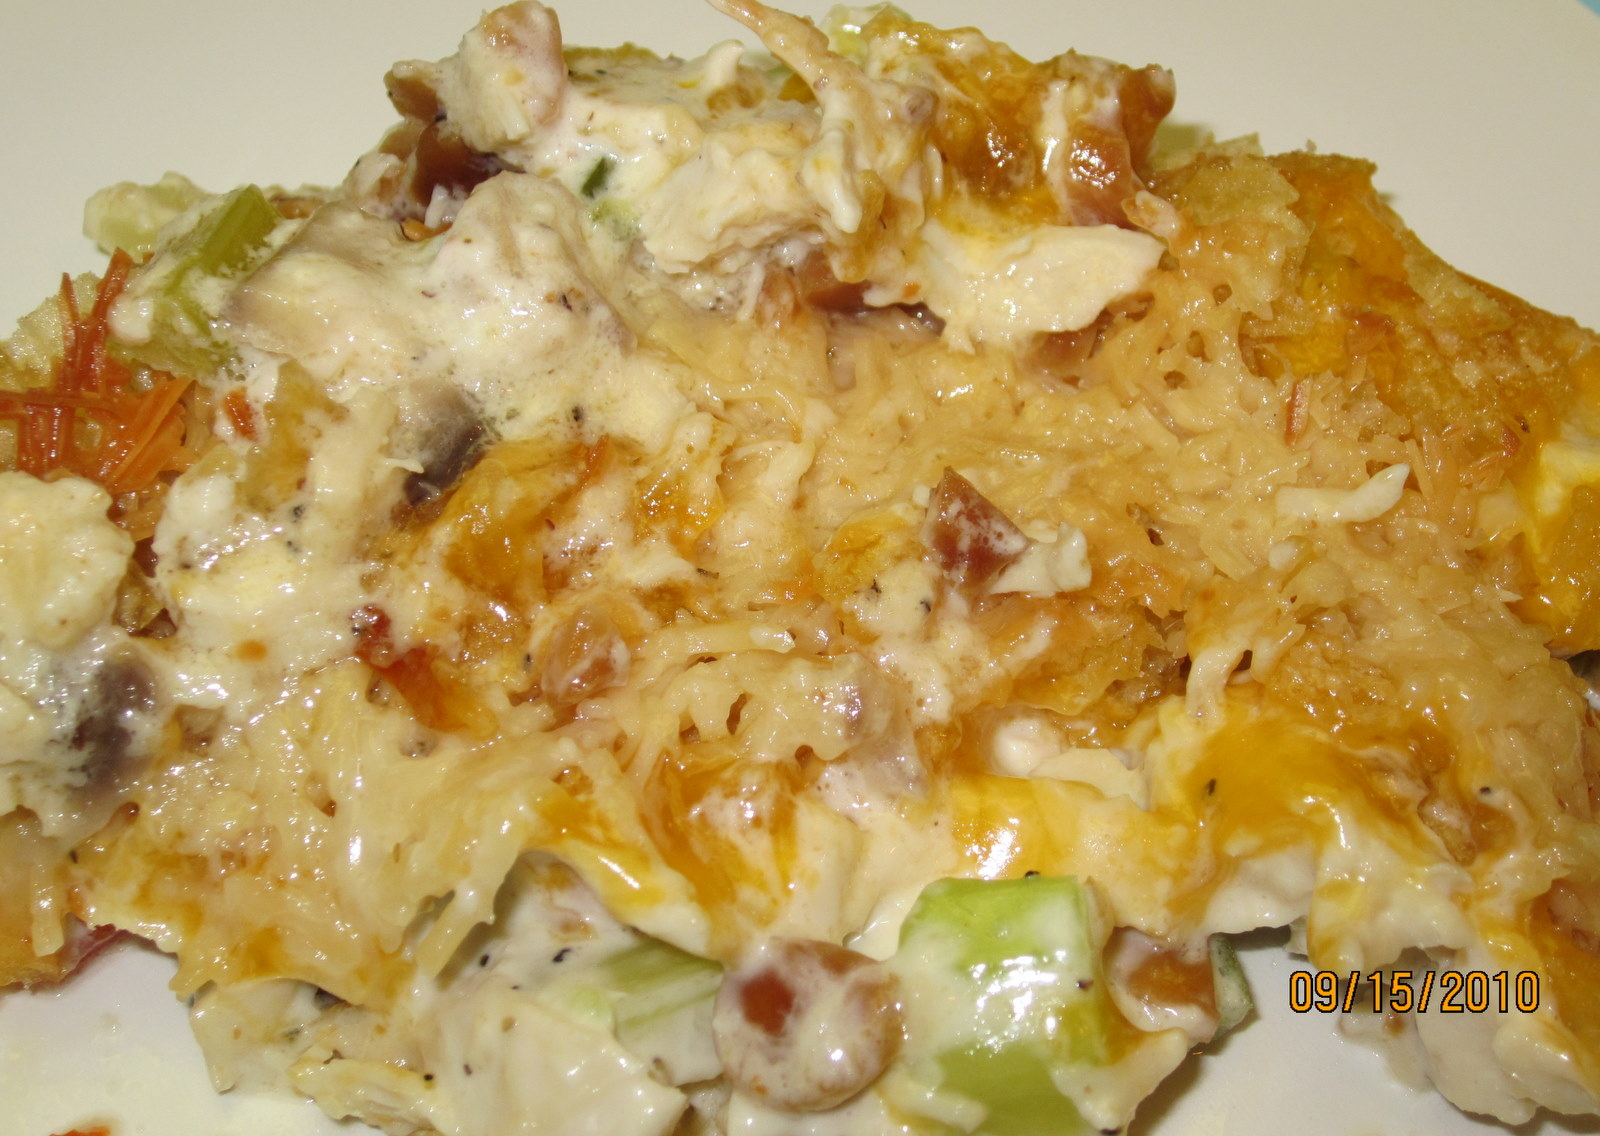 Heather Bug Bakes: Crunchy Chicken Casserole